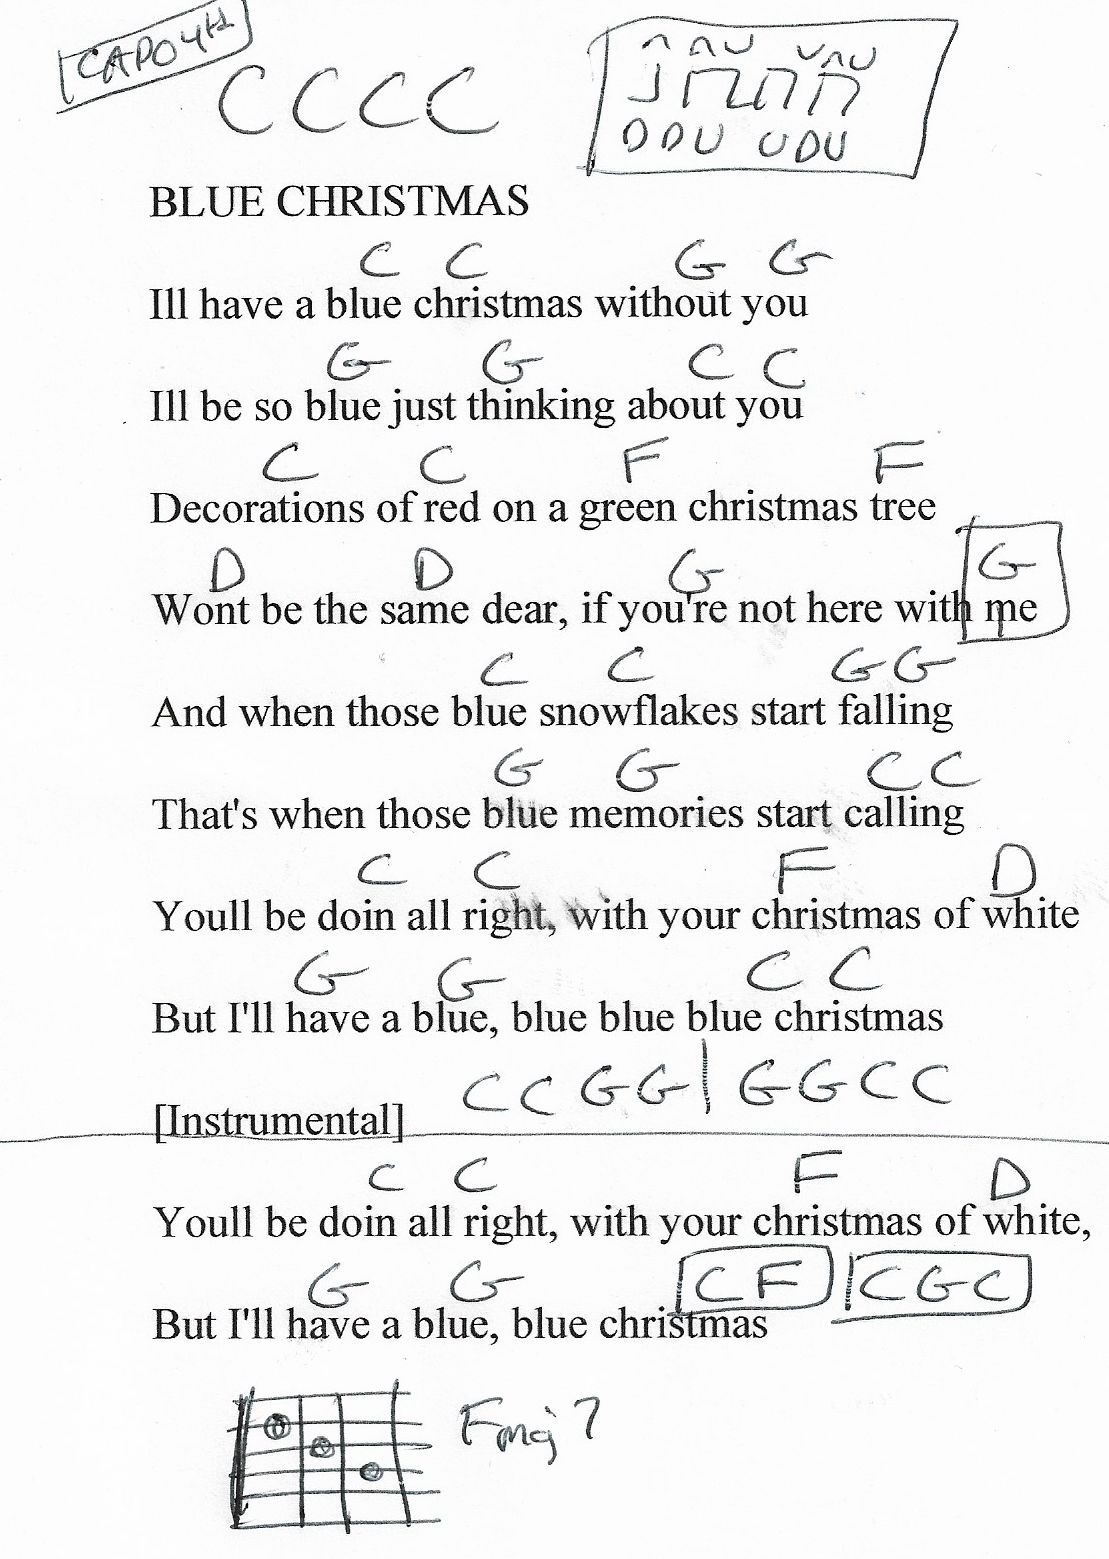 blue christmas elvis guitar chord chart capo 4th - Blue Christmas Guitar Chords